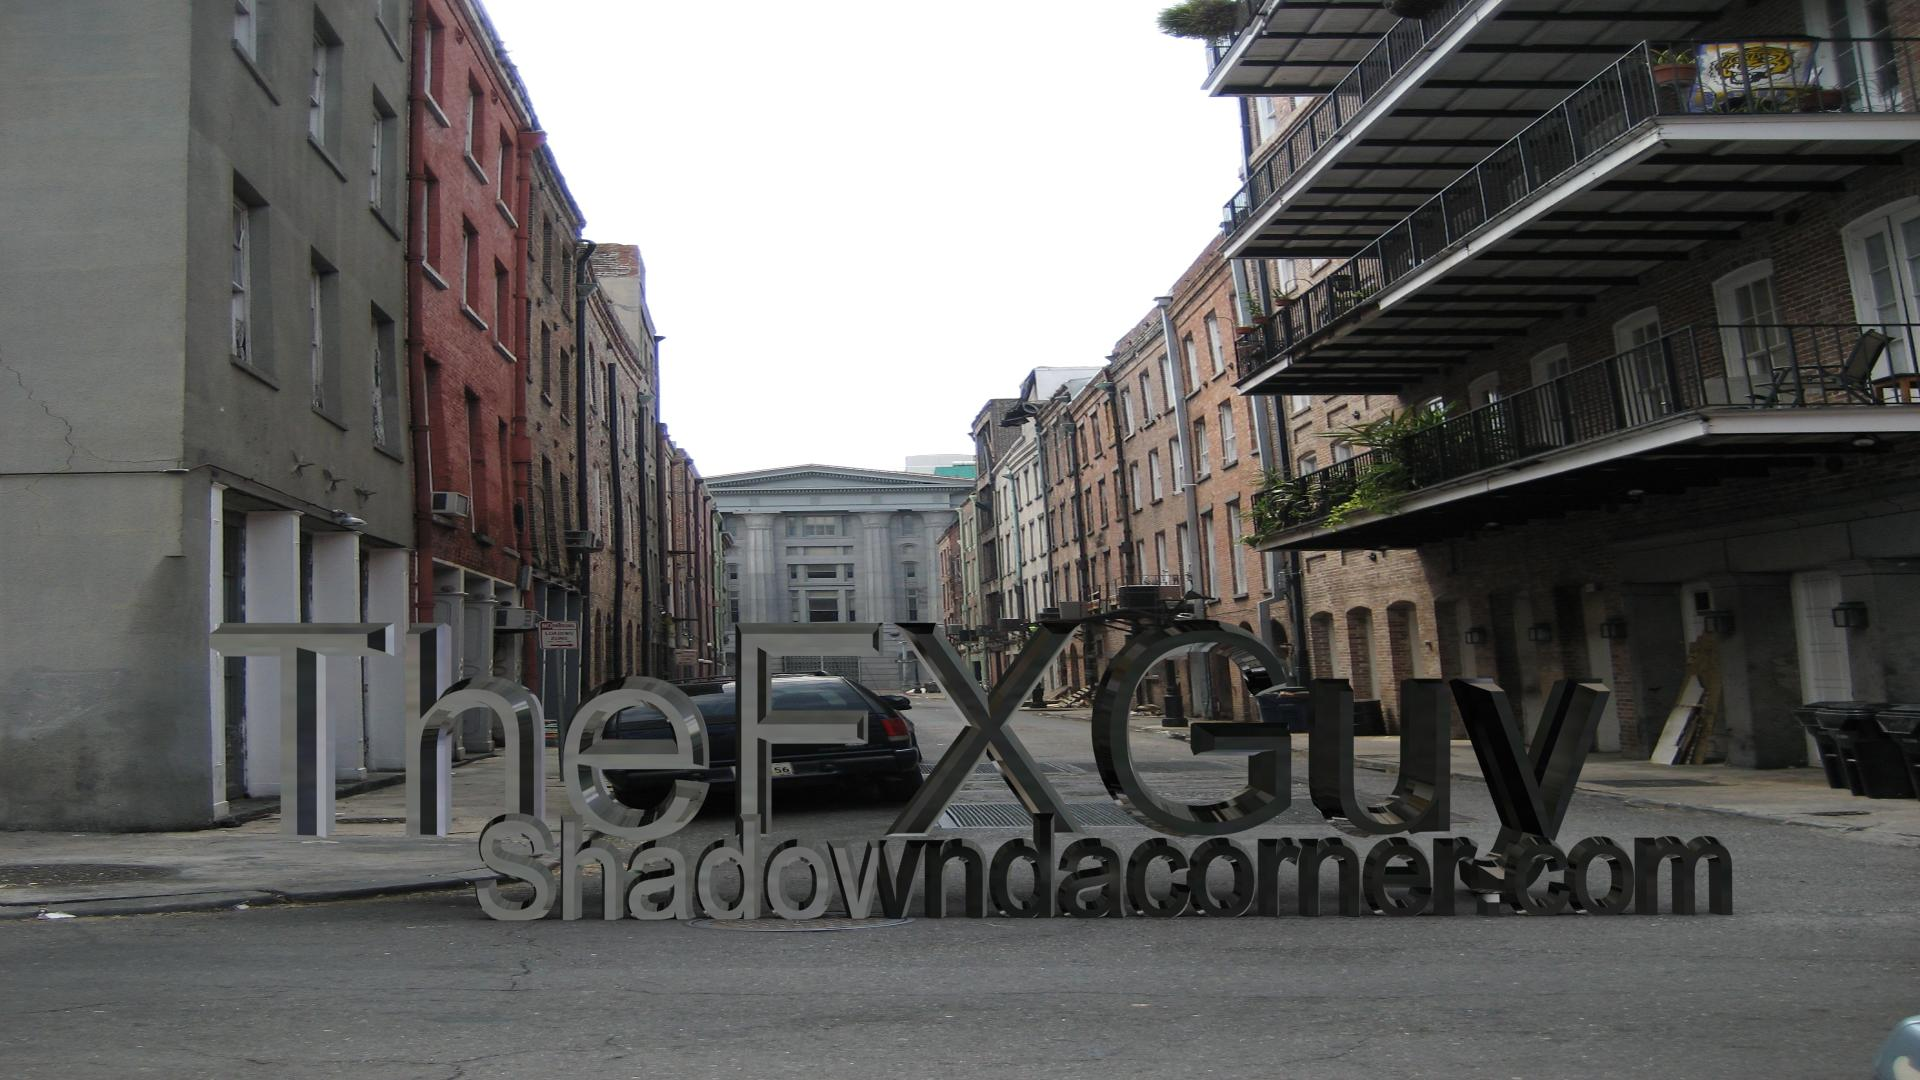 Pictures Background Current Cool Street Thefxguy wallpaper